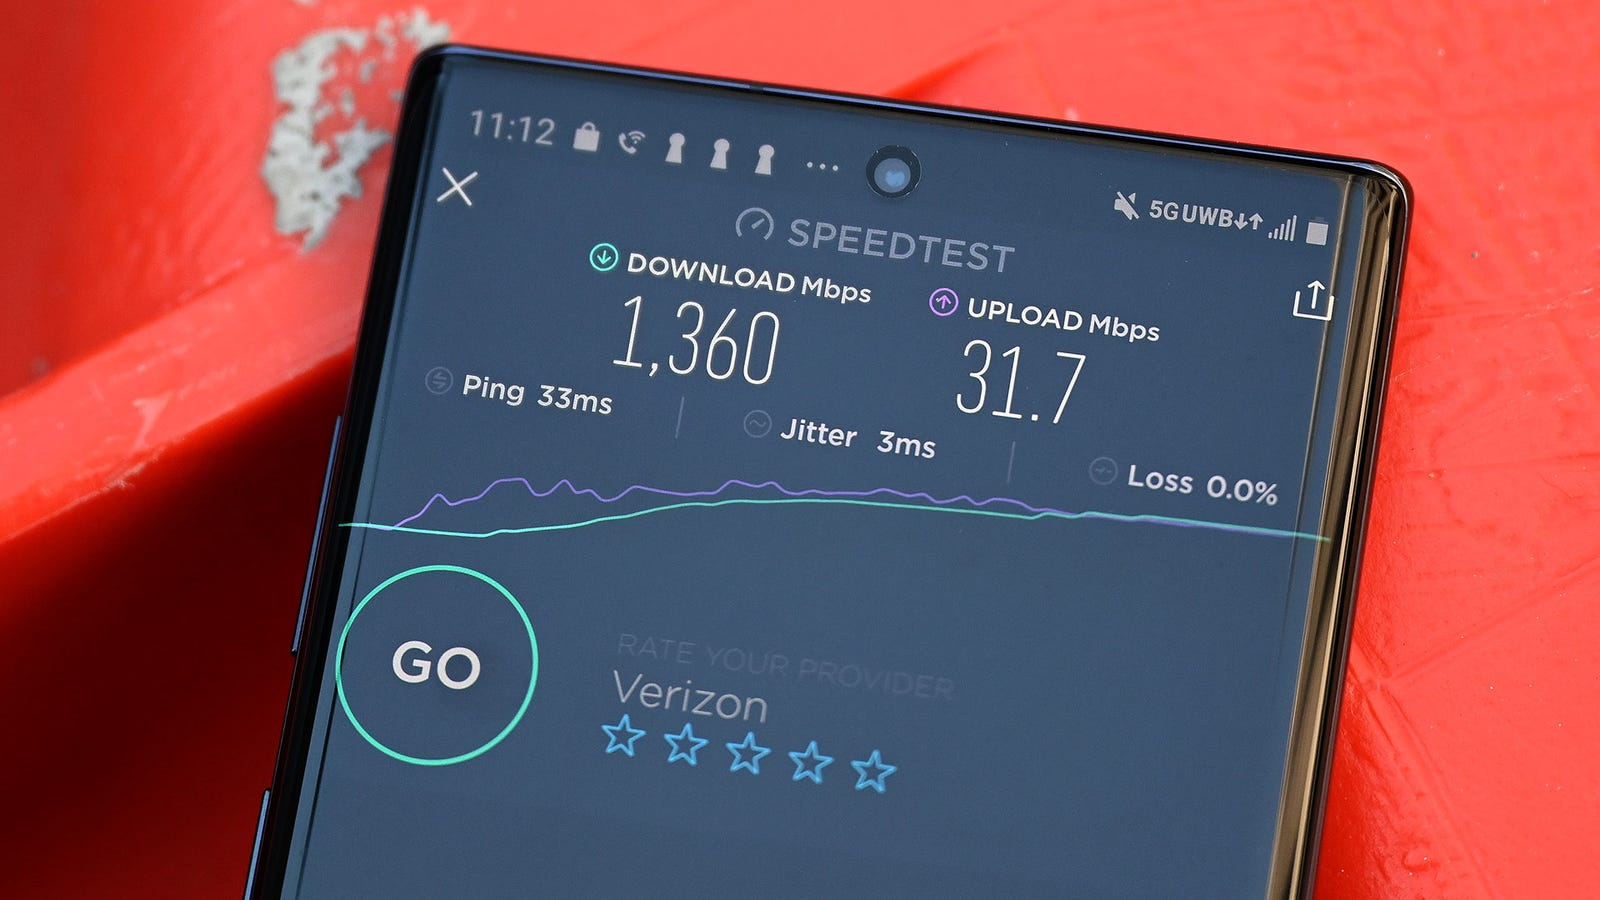 NYC Now Has Four Live 5G Networks Battling for Your Attention